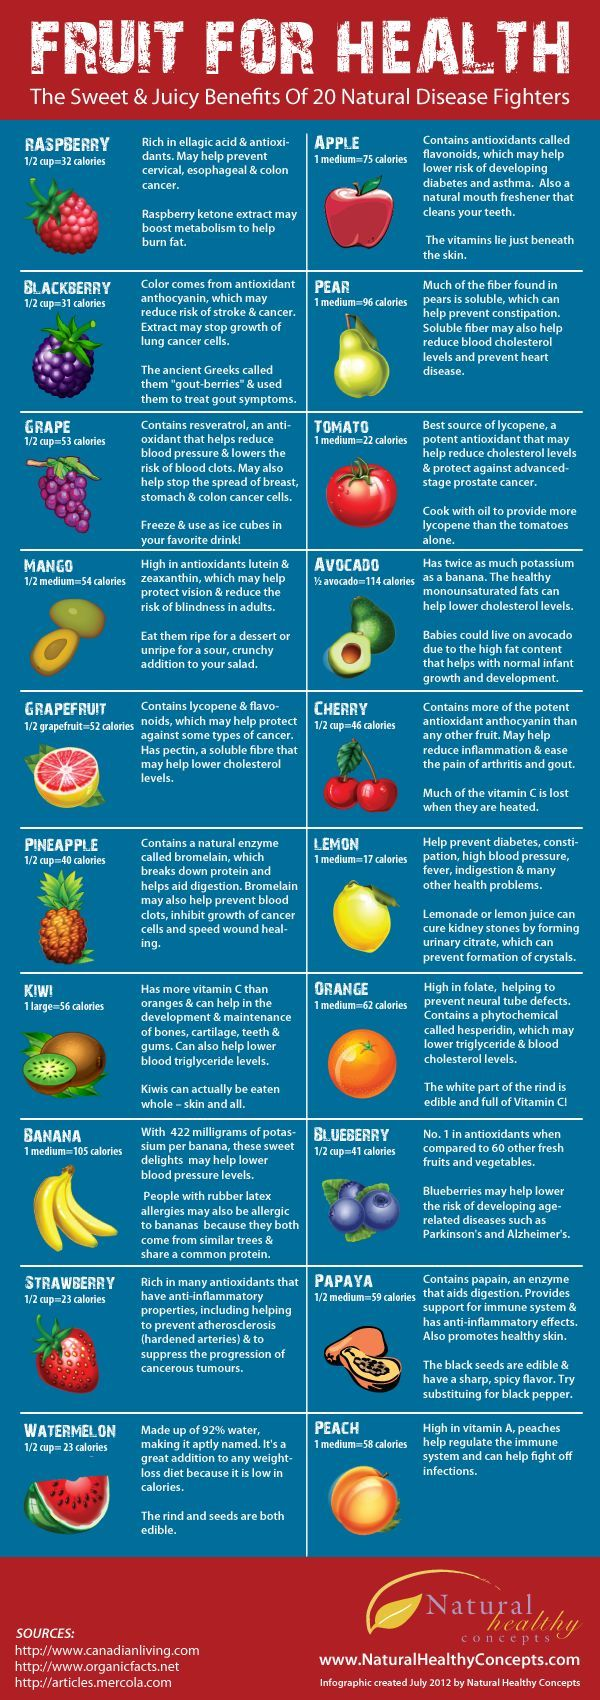 Fruit For Health Infographic https://miricbiotech.wordpress.com/2015/05/01/healthy-eating-affect-your-body/ #miricbiotech #miricbiotechltd